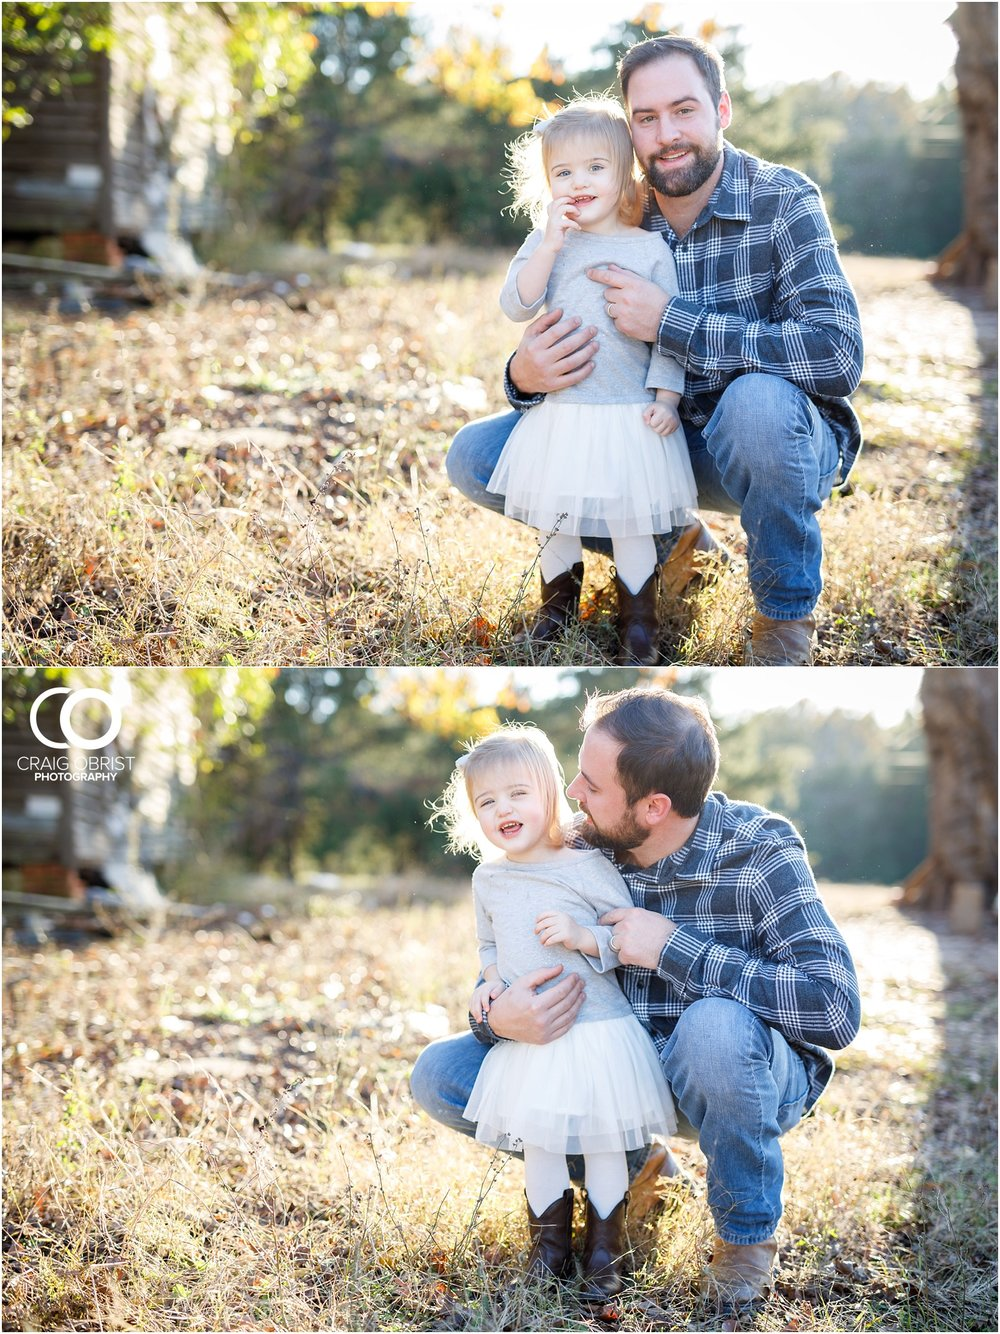 Augusta Countryside family portraits rustic_0002.jpg